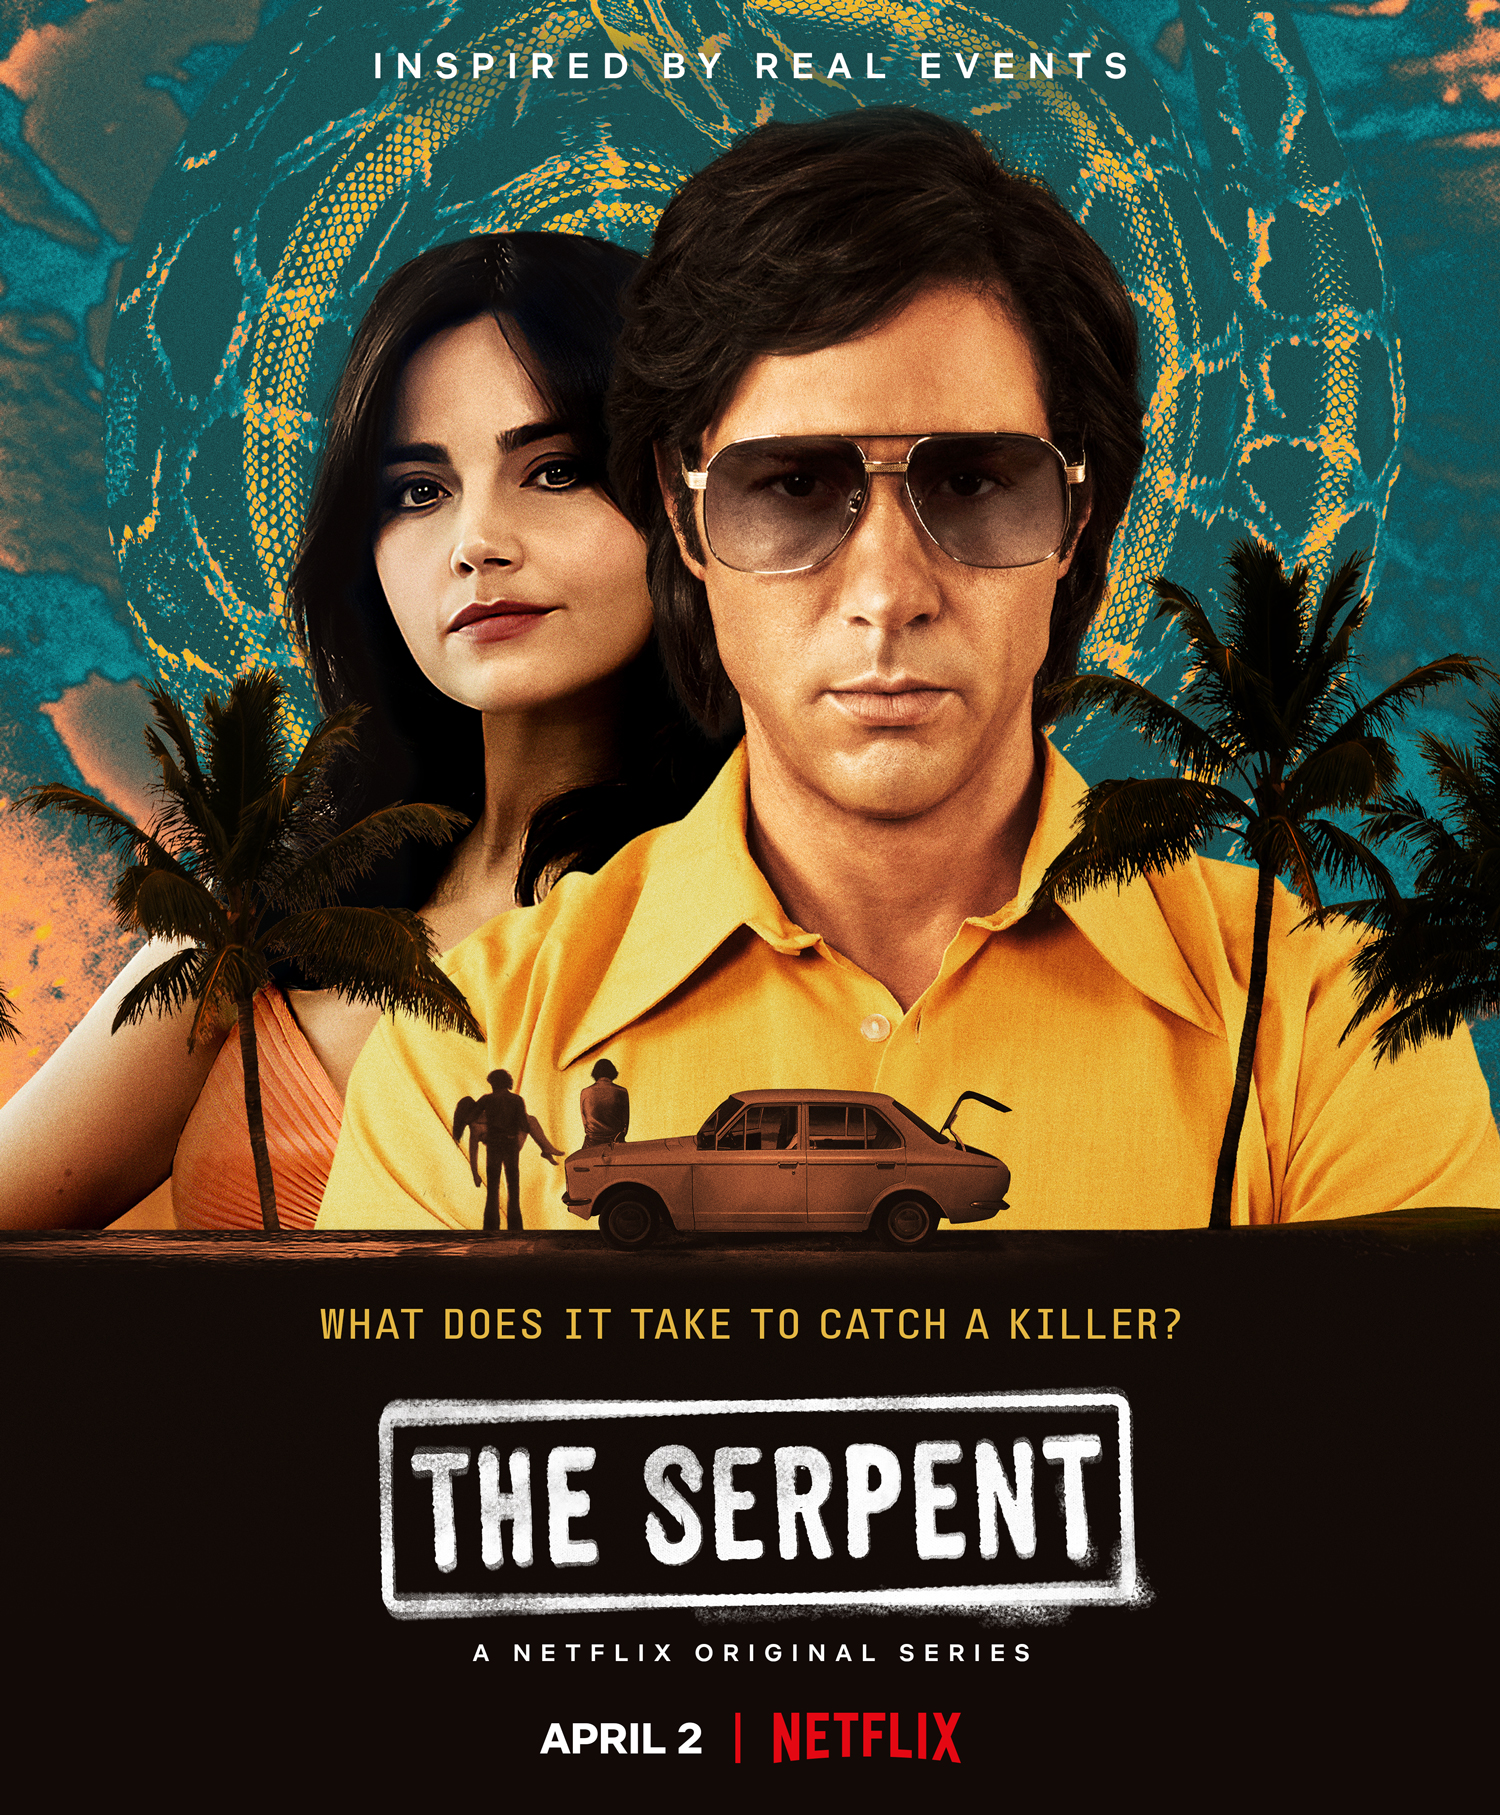 The Serpent